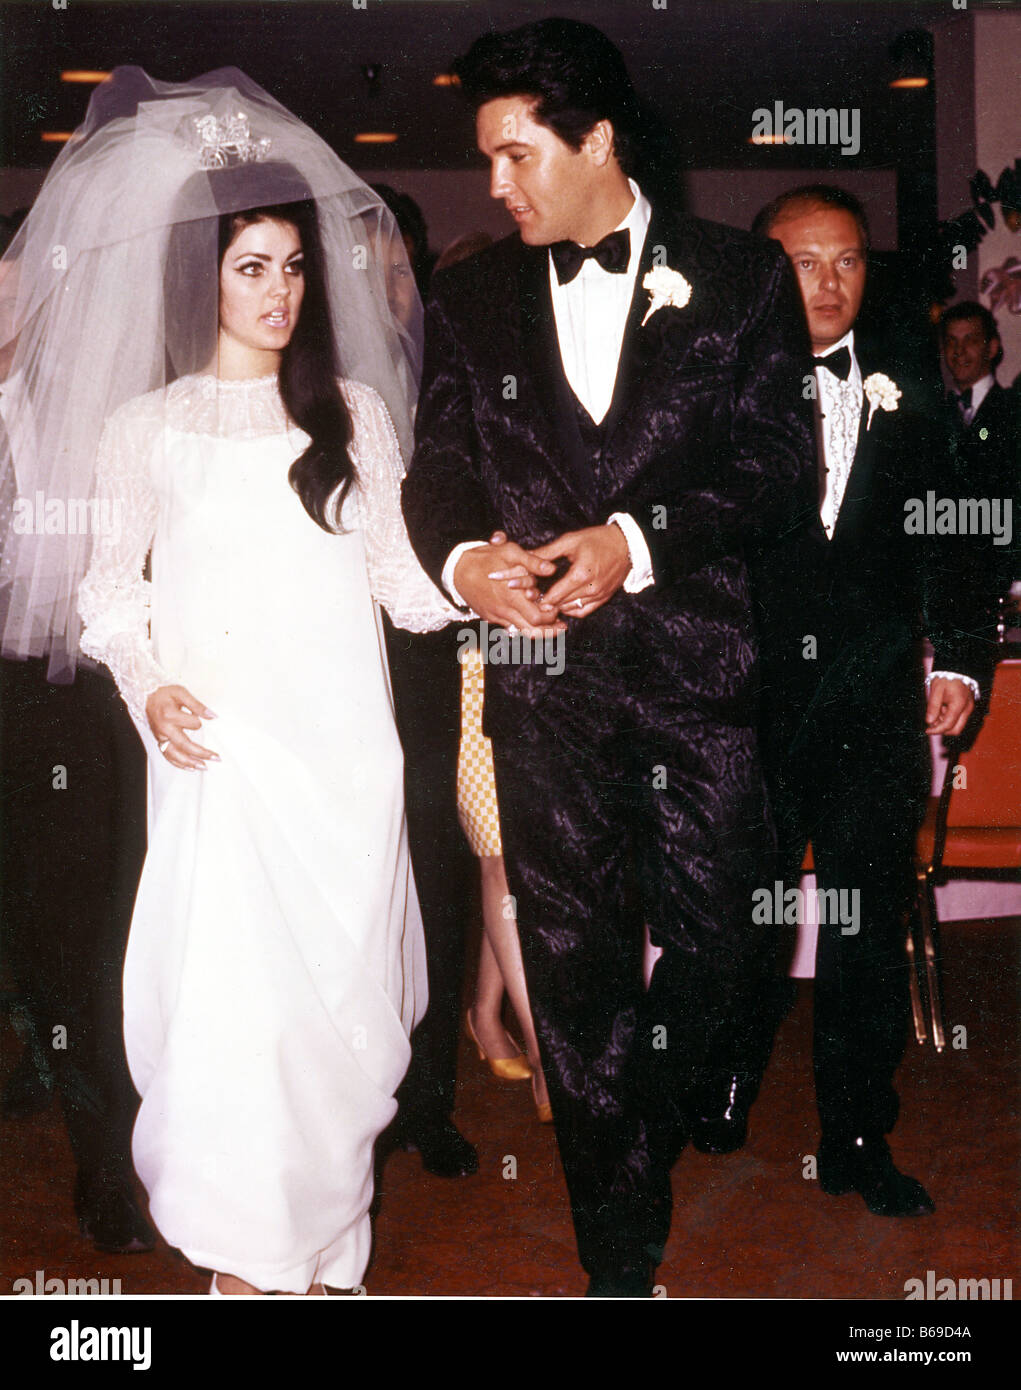 elvis presley marries priscilla 1 may 1967 at the aladdin